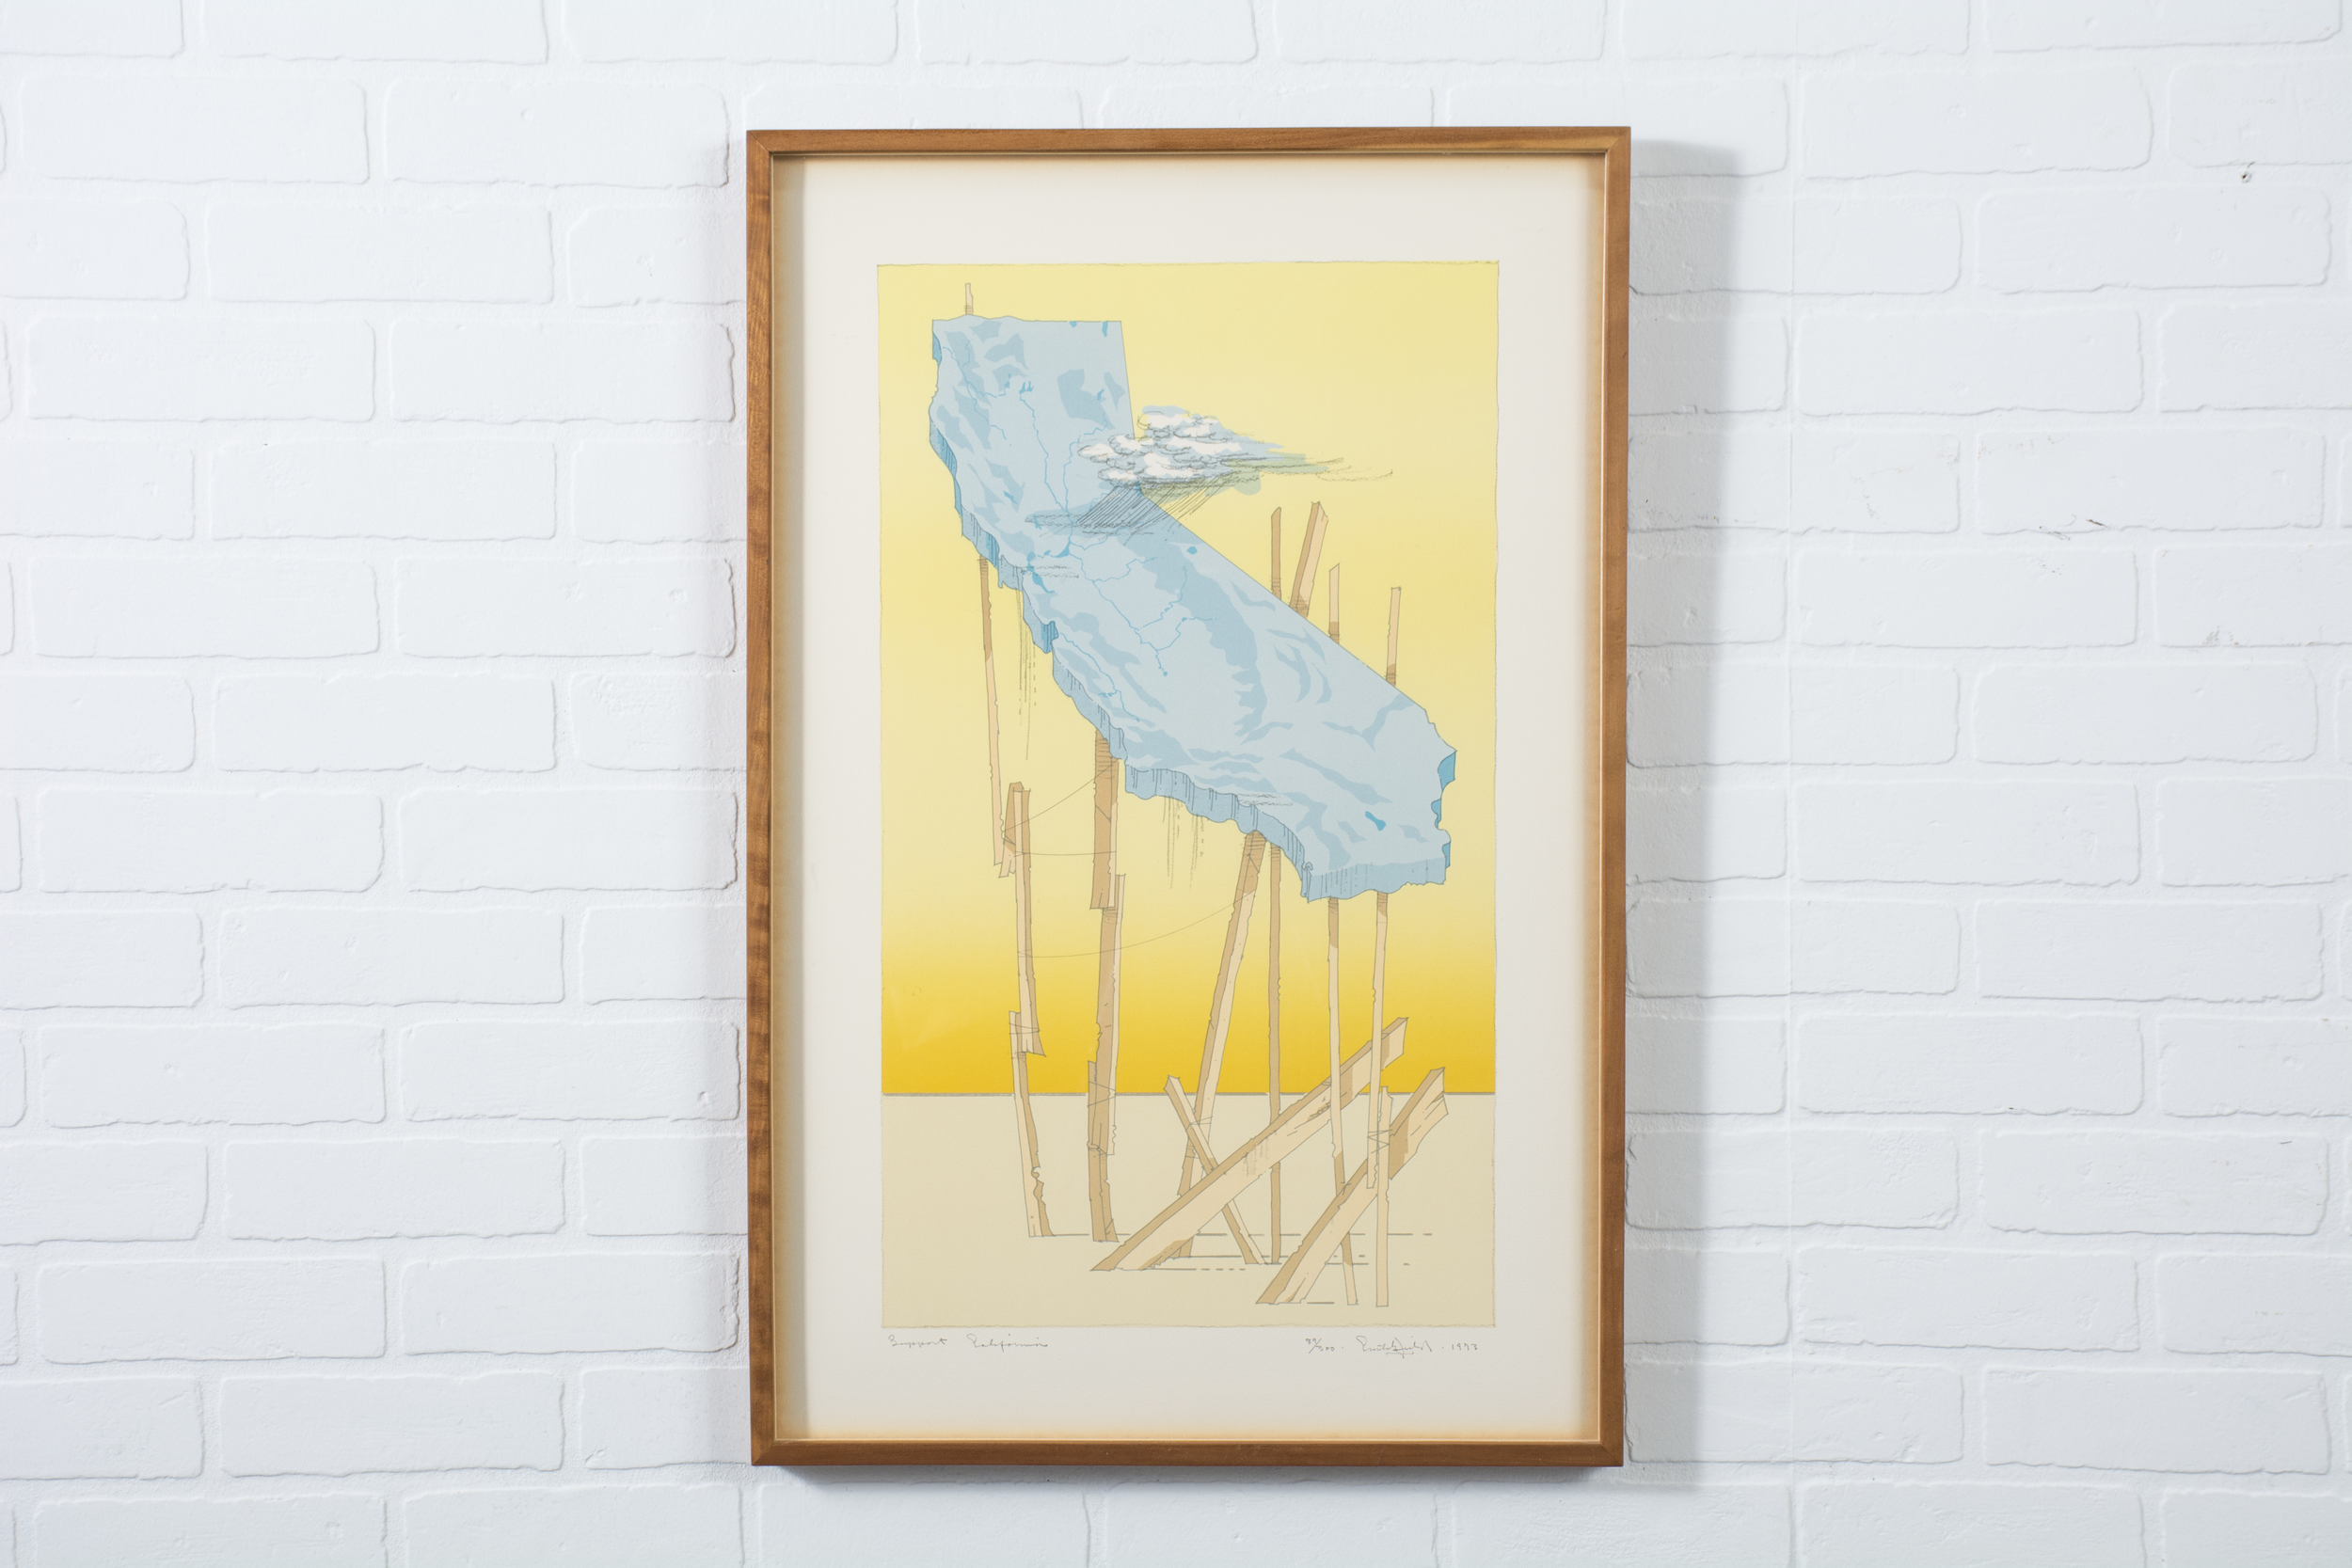 'Support California' Framed Lithograph by William Crutchfield, 1973